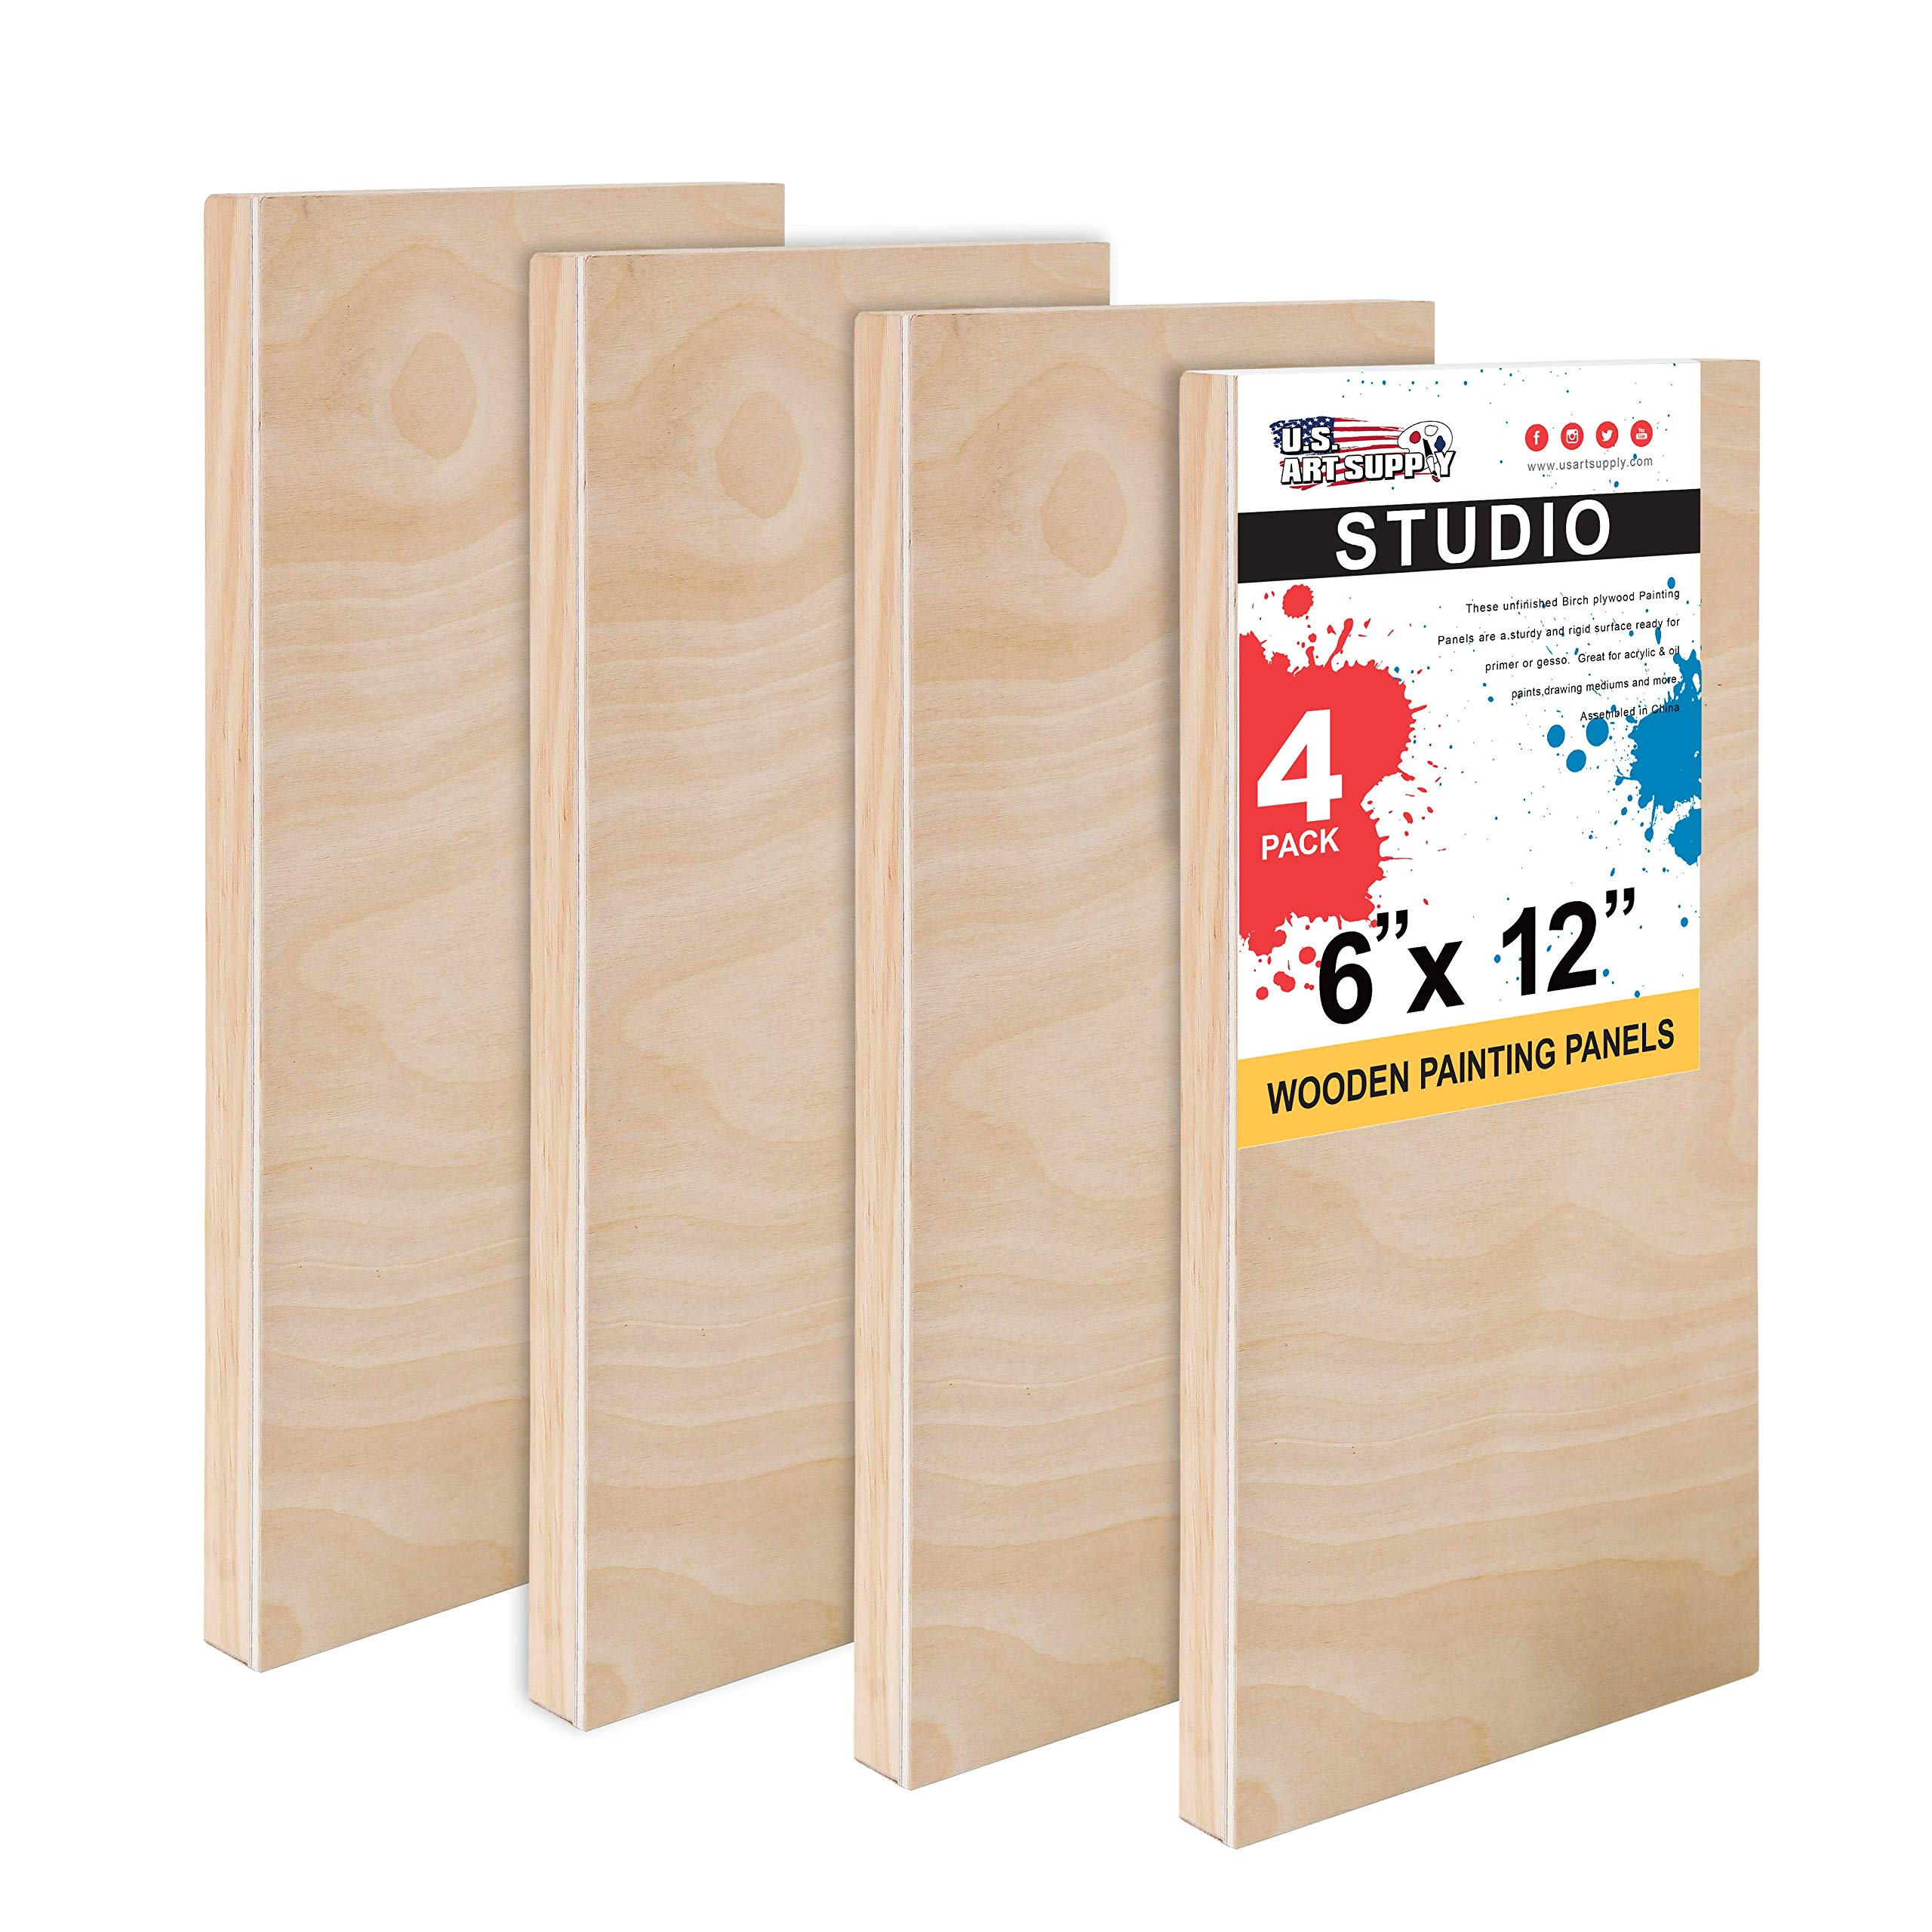 U.S. Art Supply 6'' x 12'' Birch Wood Paint Pouring Panel Boards, Studio 3/4'' Deep Cradle (Pack of 4) - Artist Wooden Wall Canvases - Painting Mixed-Media Craft, Acrylic, Oil, Watercolor, Encaustic by U.S. Art Supply